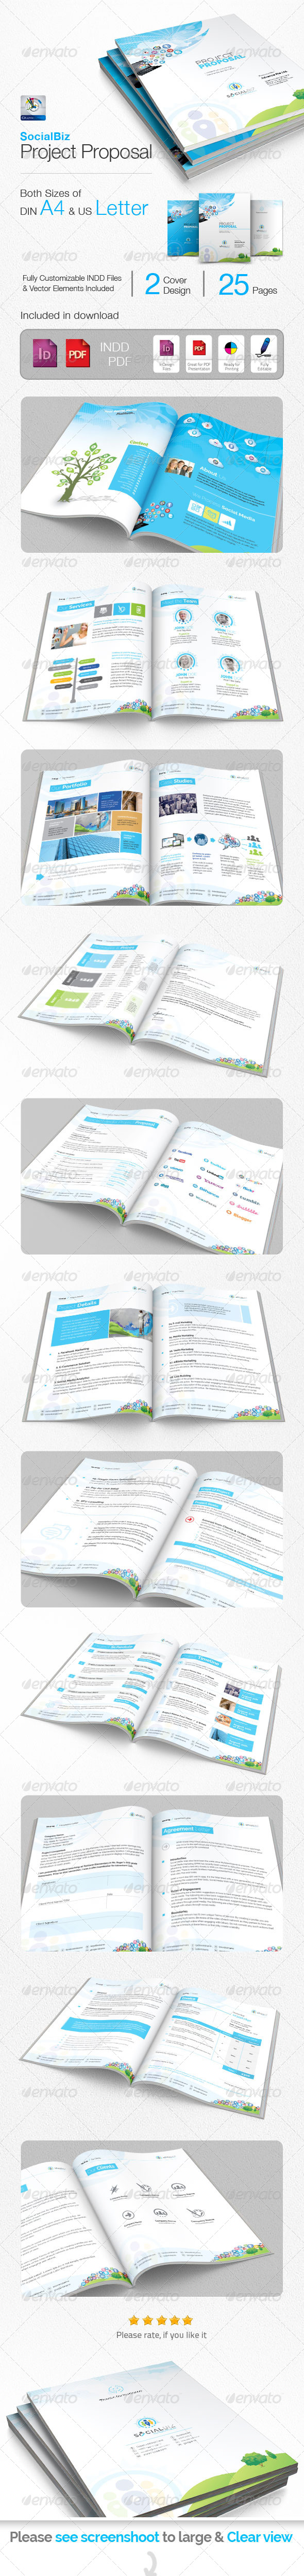 GraphicRiver SocialBiz Social Media Proposal 5745072